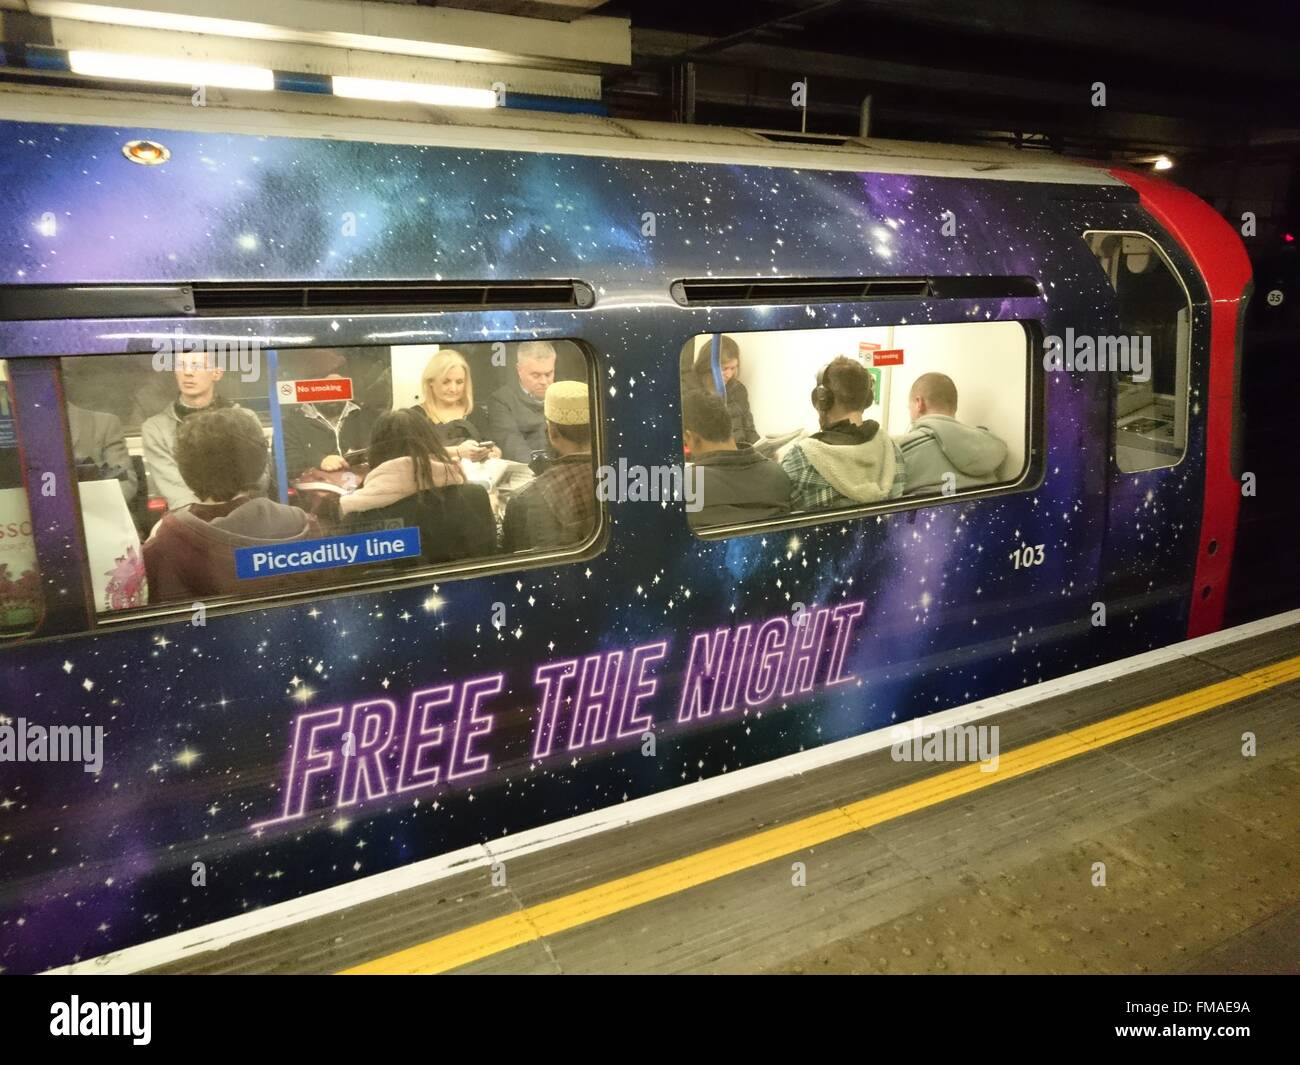 TFL (Transport for London) promotes Night tube service on Piccadilly line in London Underground, London, UK, 8 December - Stock Image